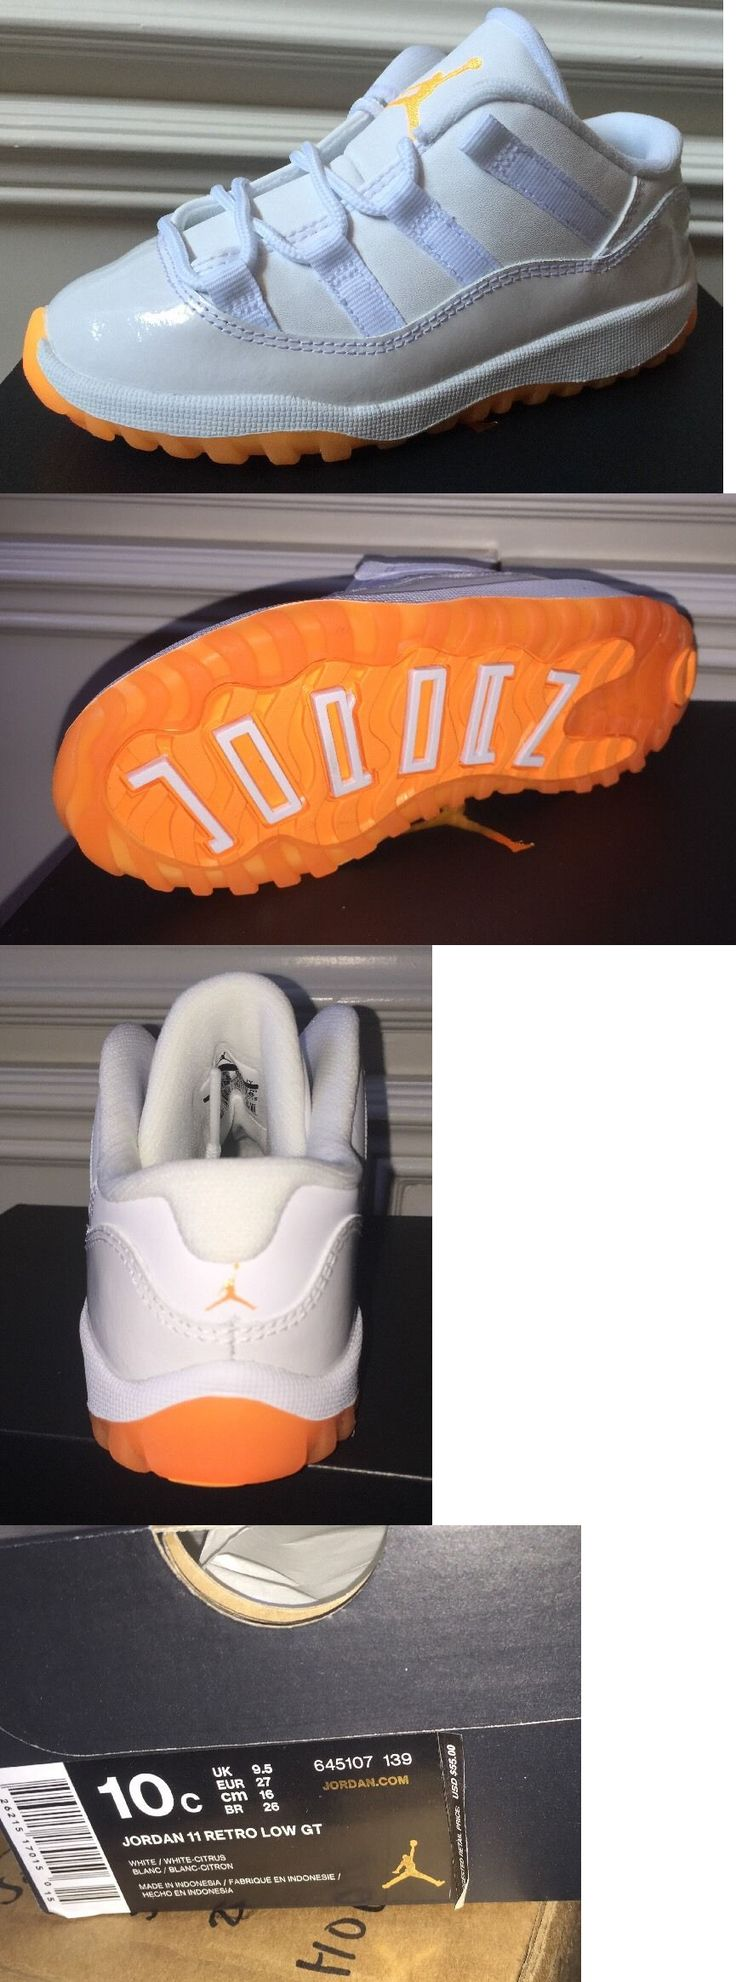 Infant Shoes: Nike Air Jordan 11 Retro Xi Td White Citrus Orange Baby Girls Infant Sz 10C -> BUY IT NOW ONLY: $69.99 on eBay!